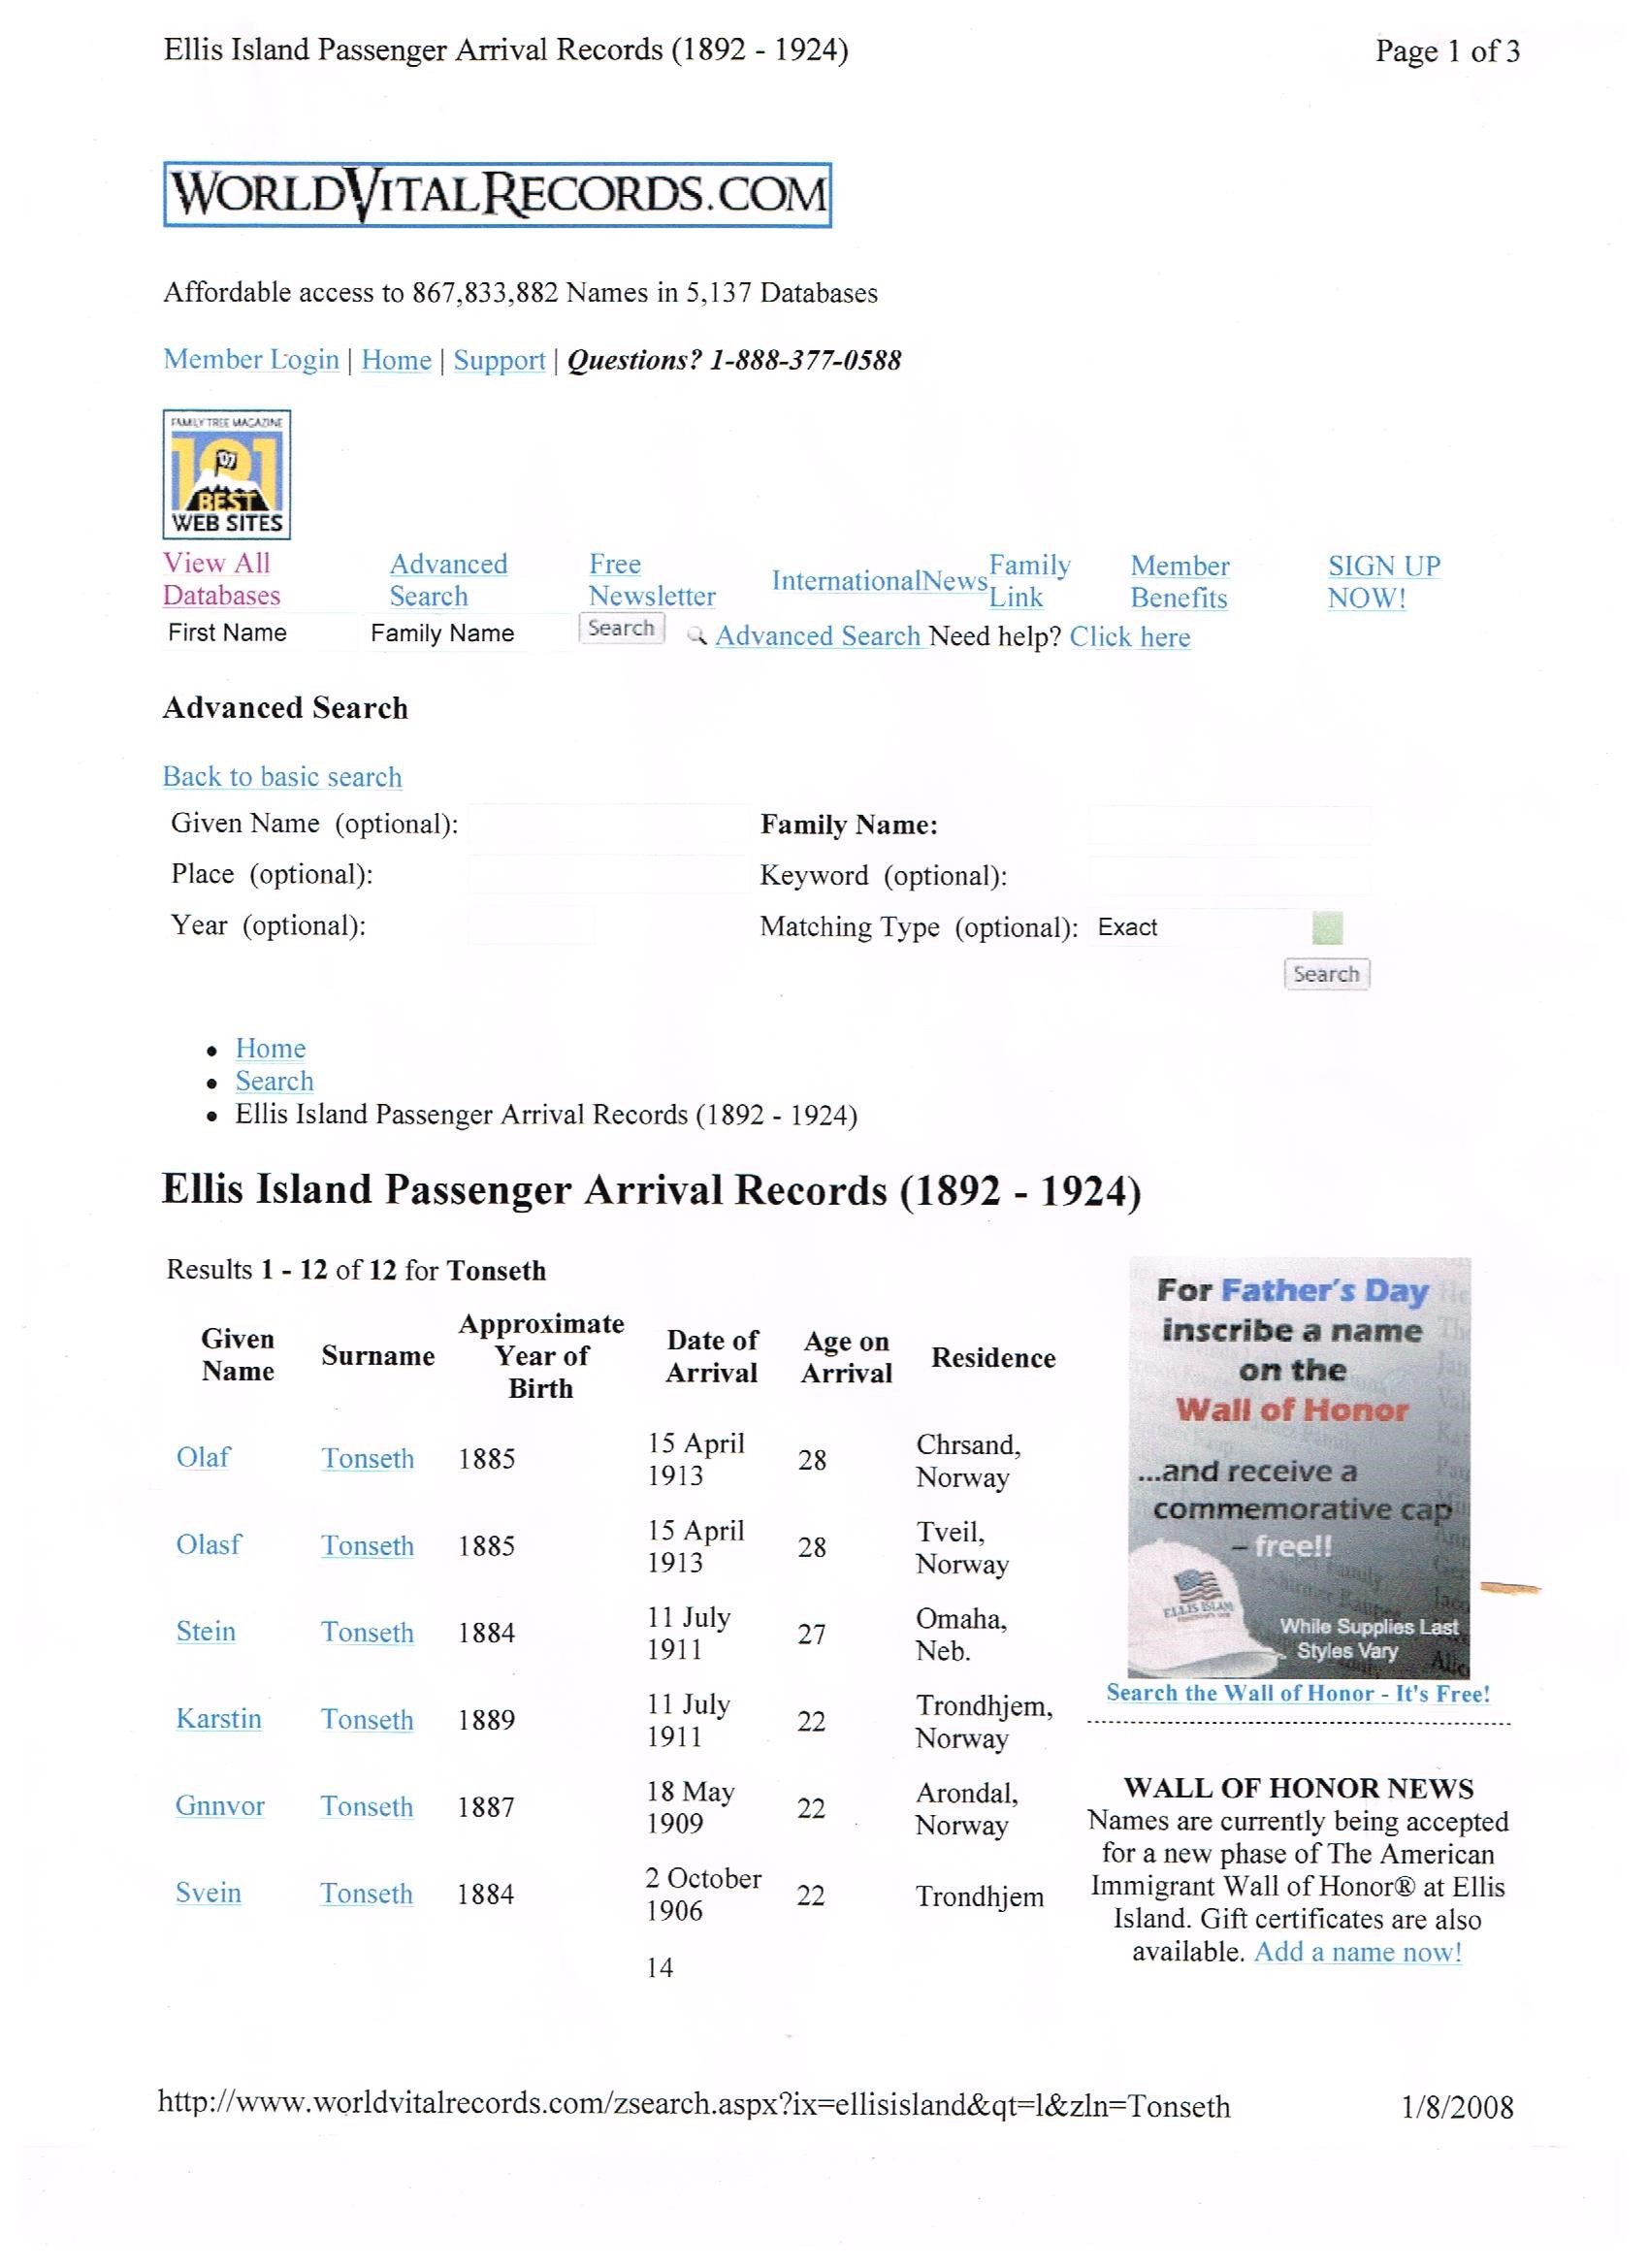 not Ellis Island passenger arrival Records (1892-1924)